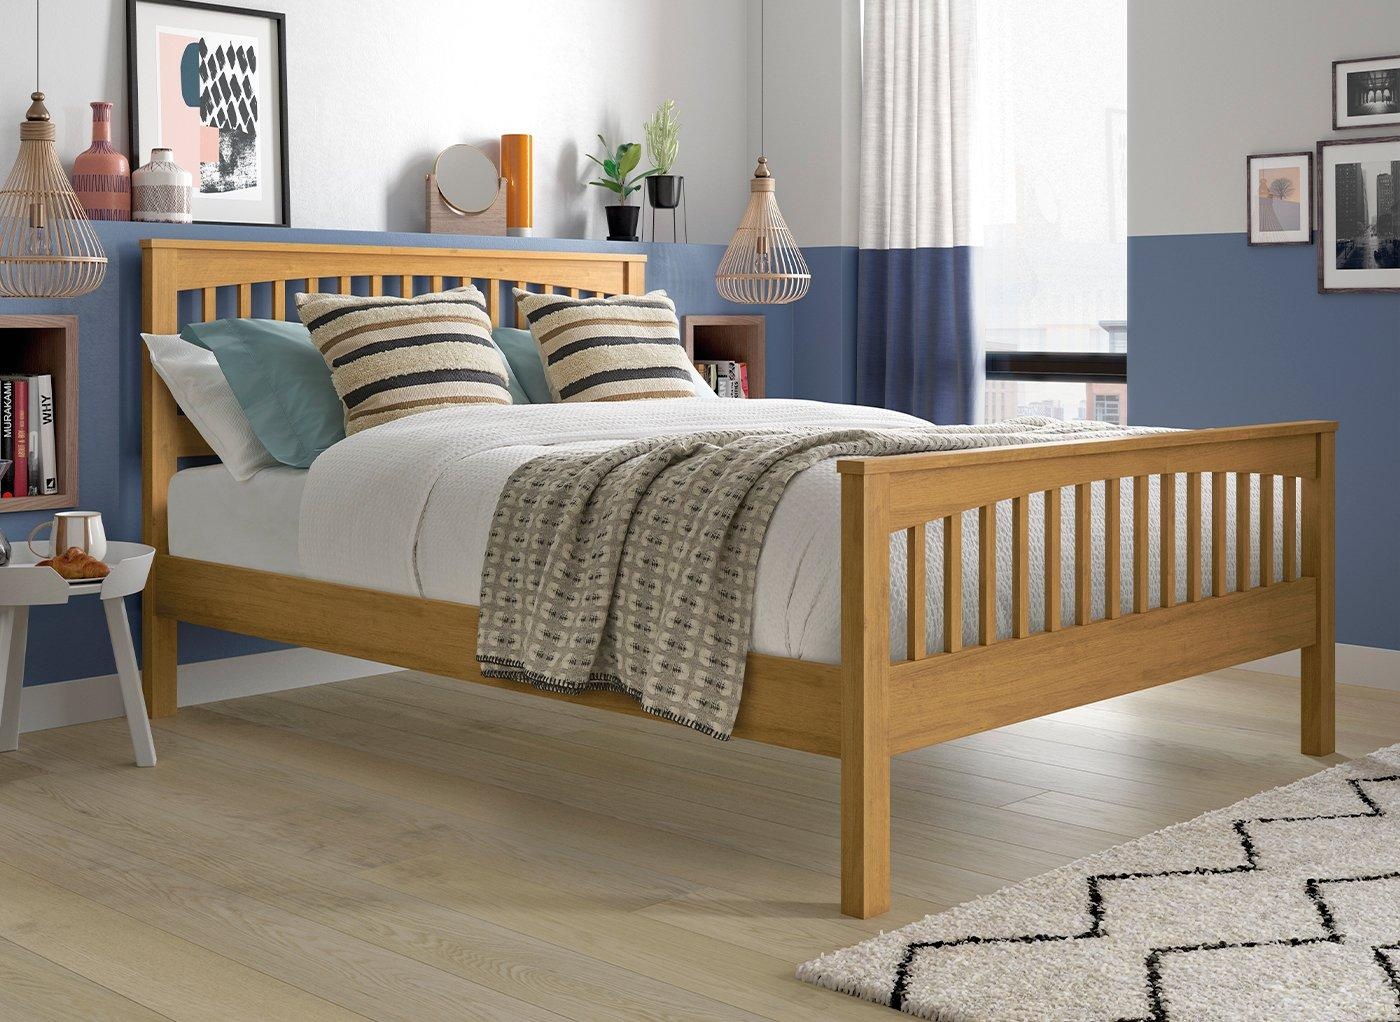 fleetwood-oak-wooden-bed-frame